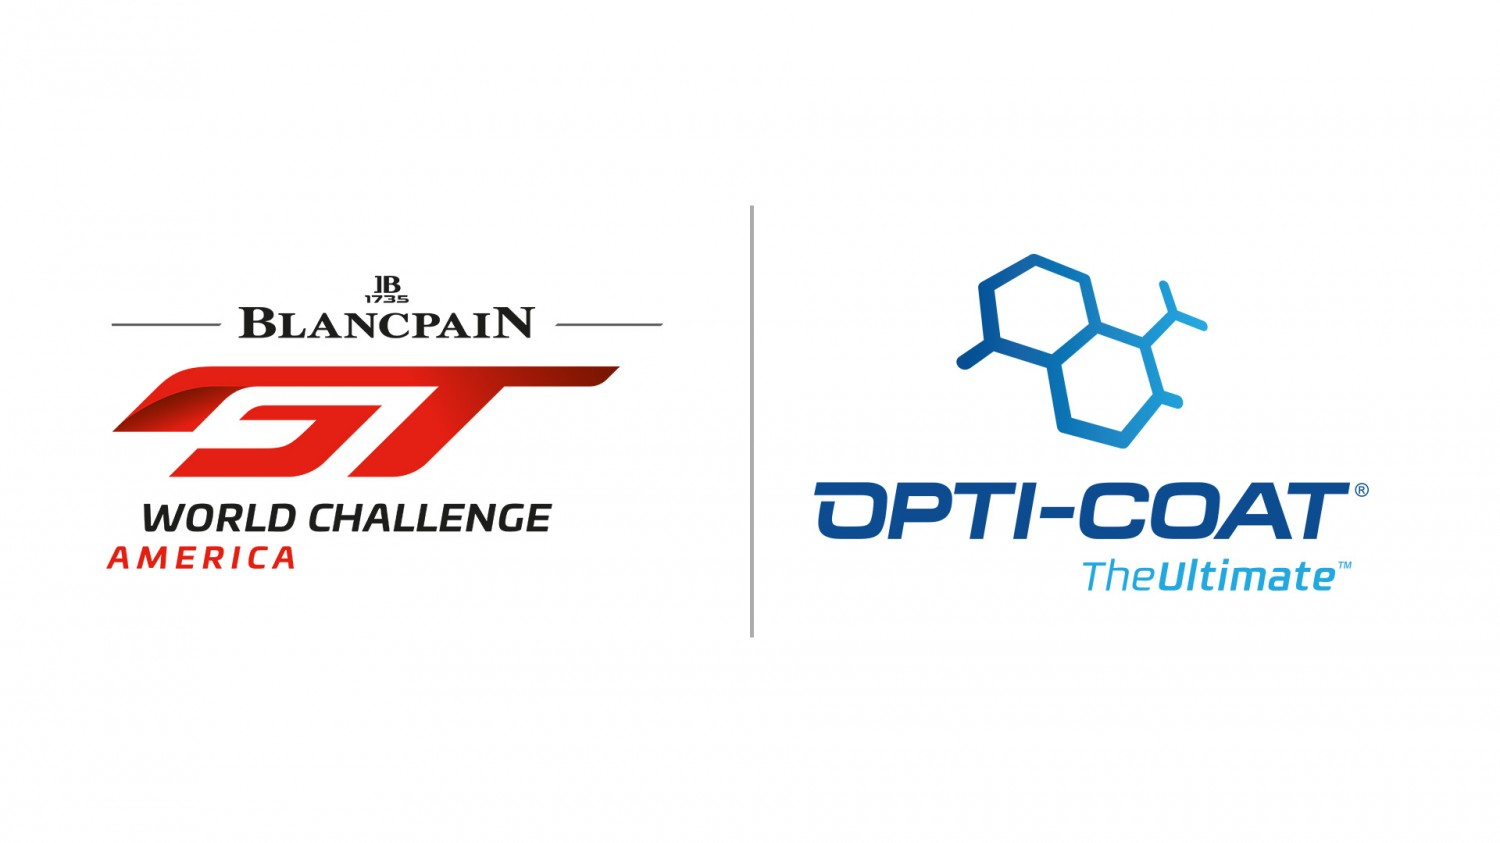 Blancpain GT World Challenge America Adds Opti-Coat as Official Car Care Partner